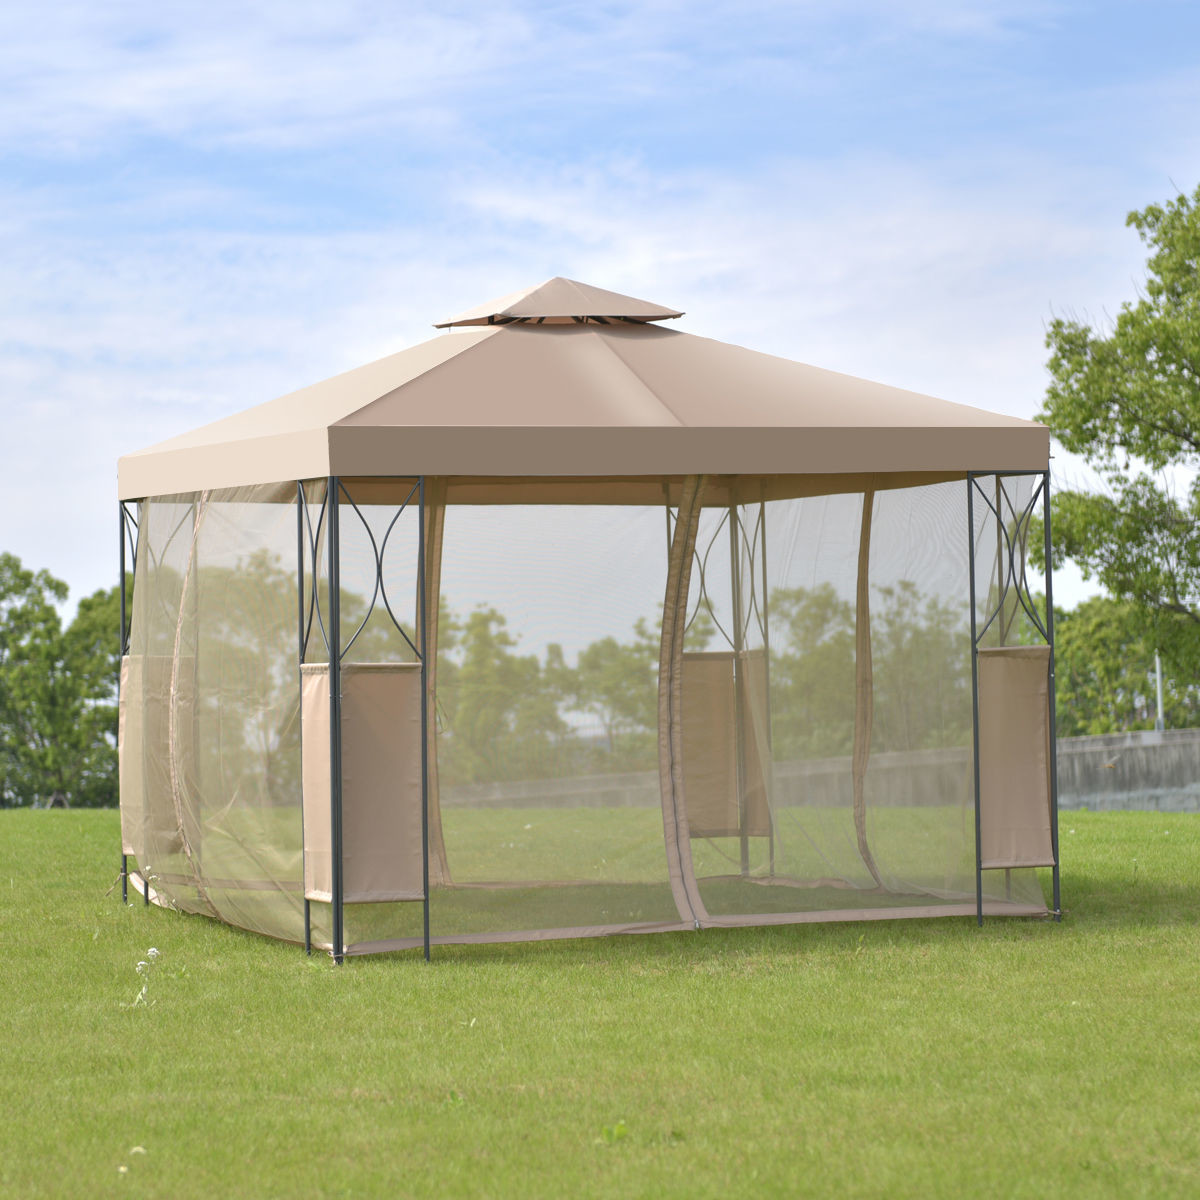 2-Tier 10'x10' Gazebo Canopy Tent Shelter Awning Steel Patio Garden Brown Cover by